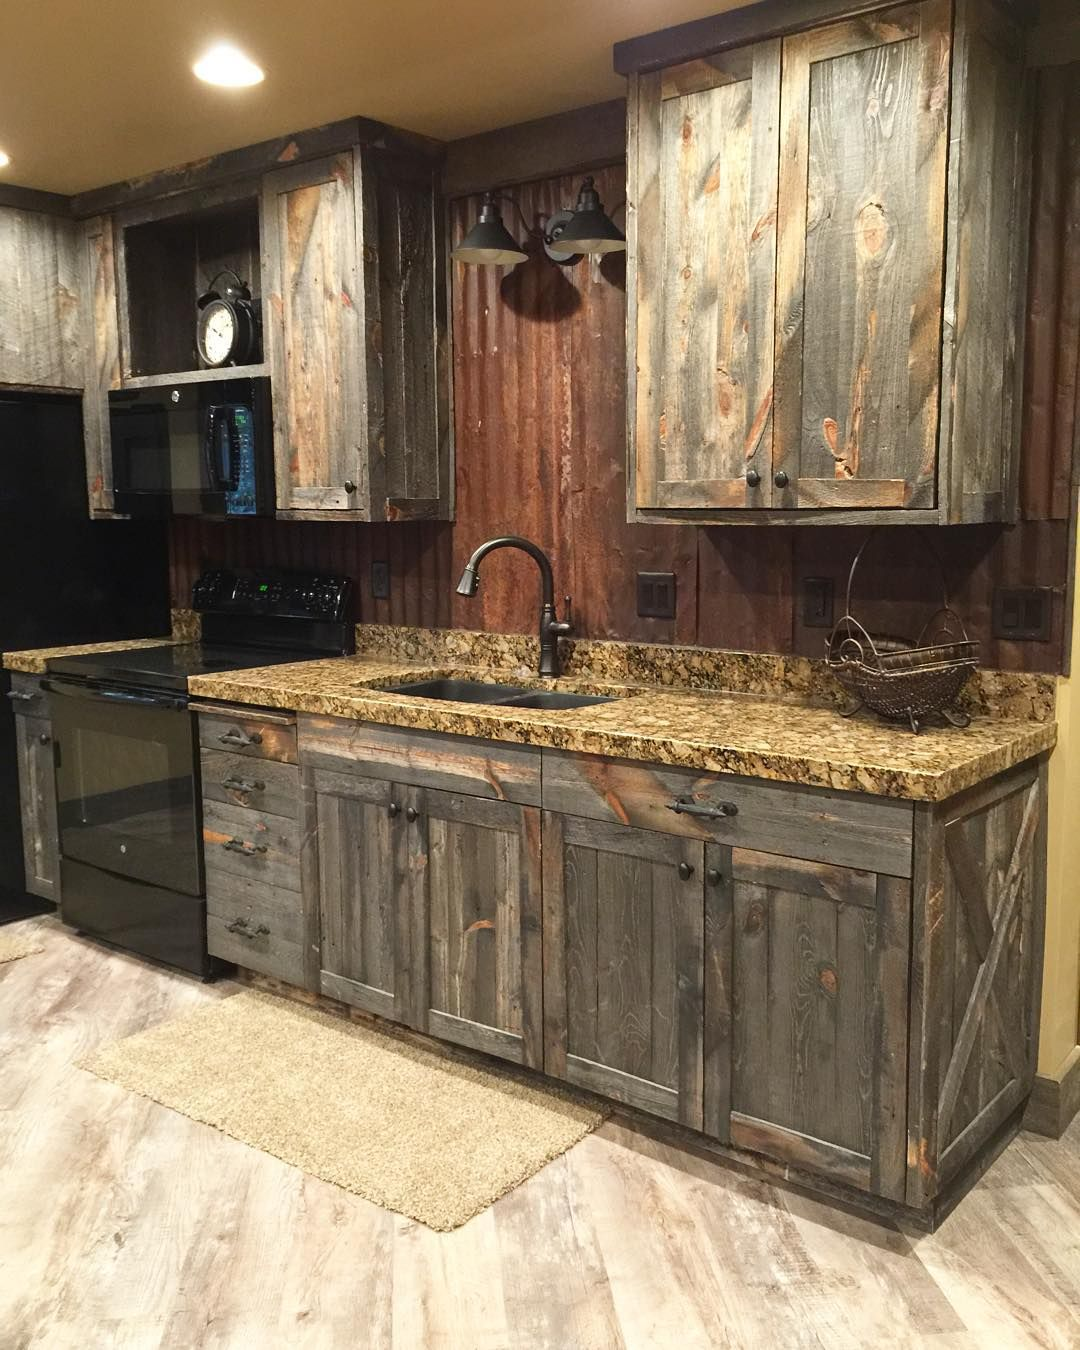 Wonderful A Little Barnwood Kitchen Cabinets And Corrugated Steel Backsplash. Love  How Rustic And Homey It Is! #cabininthewoods.